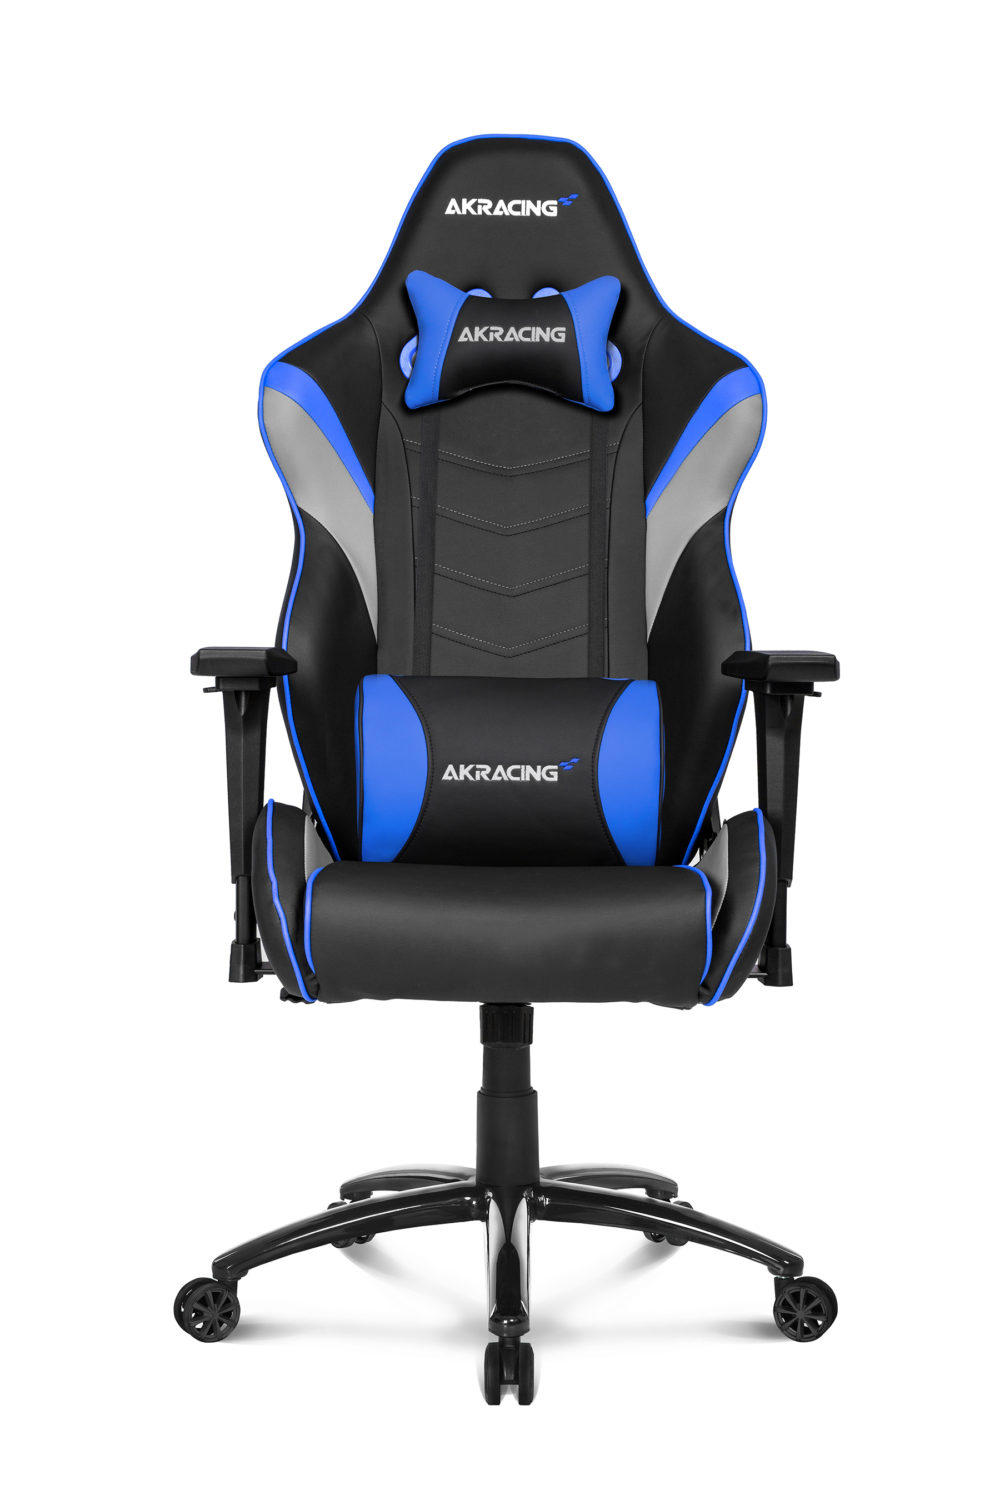 AKRacing Core LX gamestoel blauw